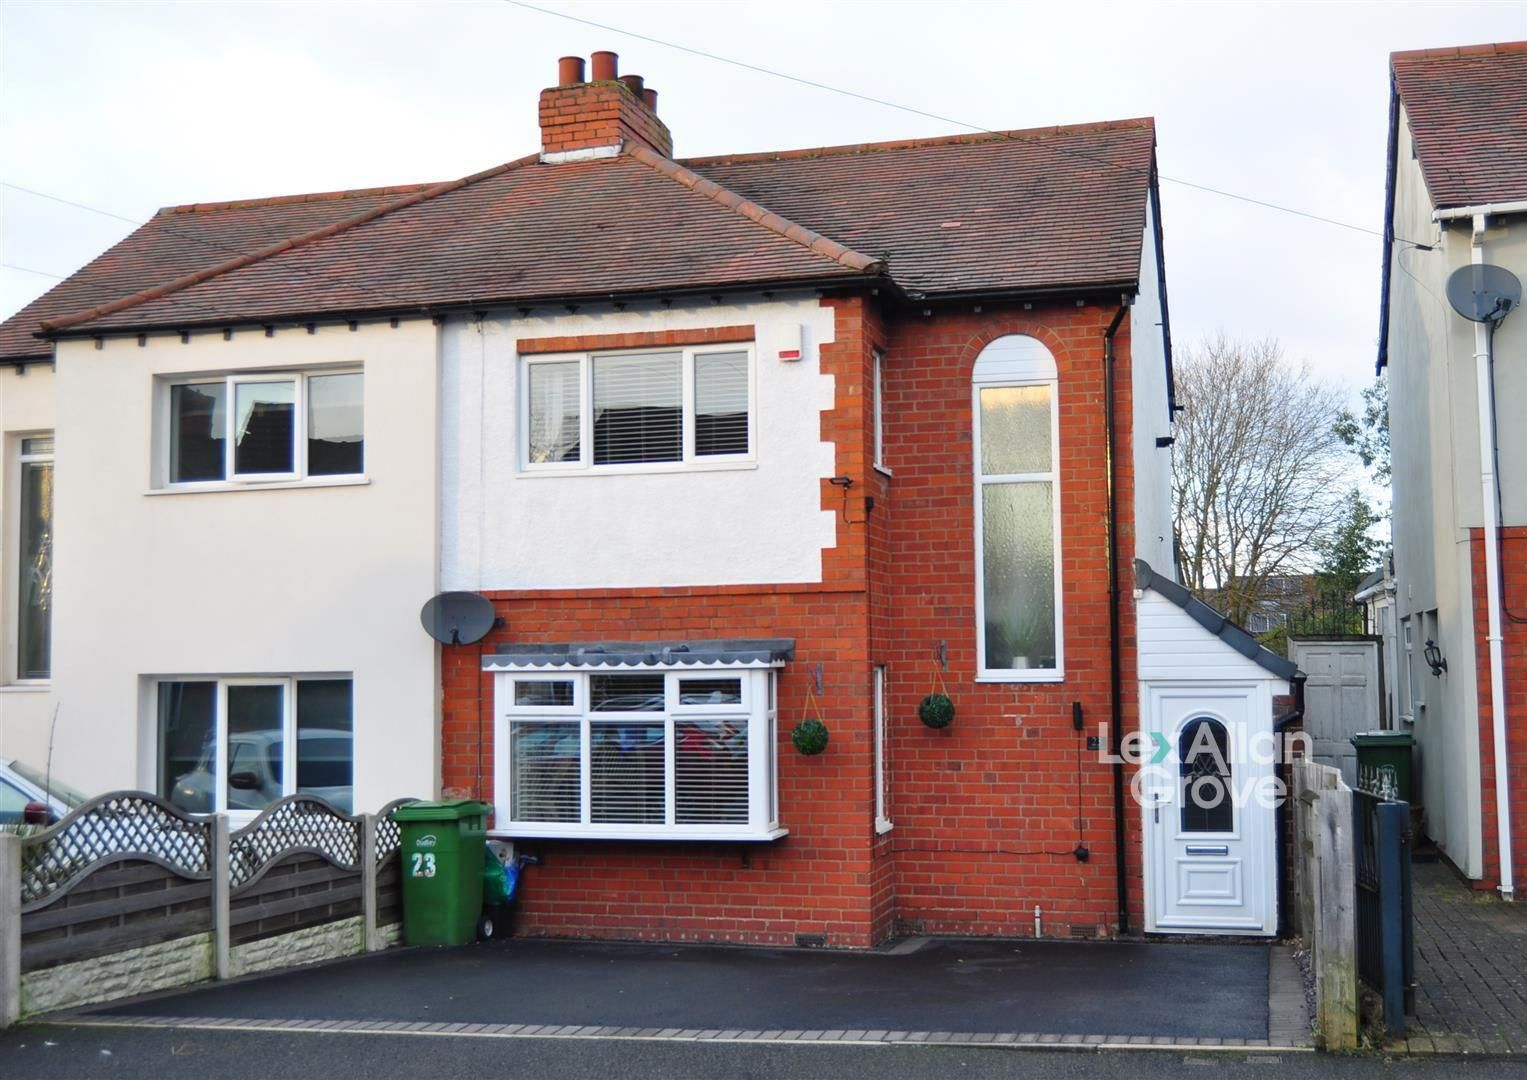 2 bed semi-detached for sale, B62